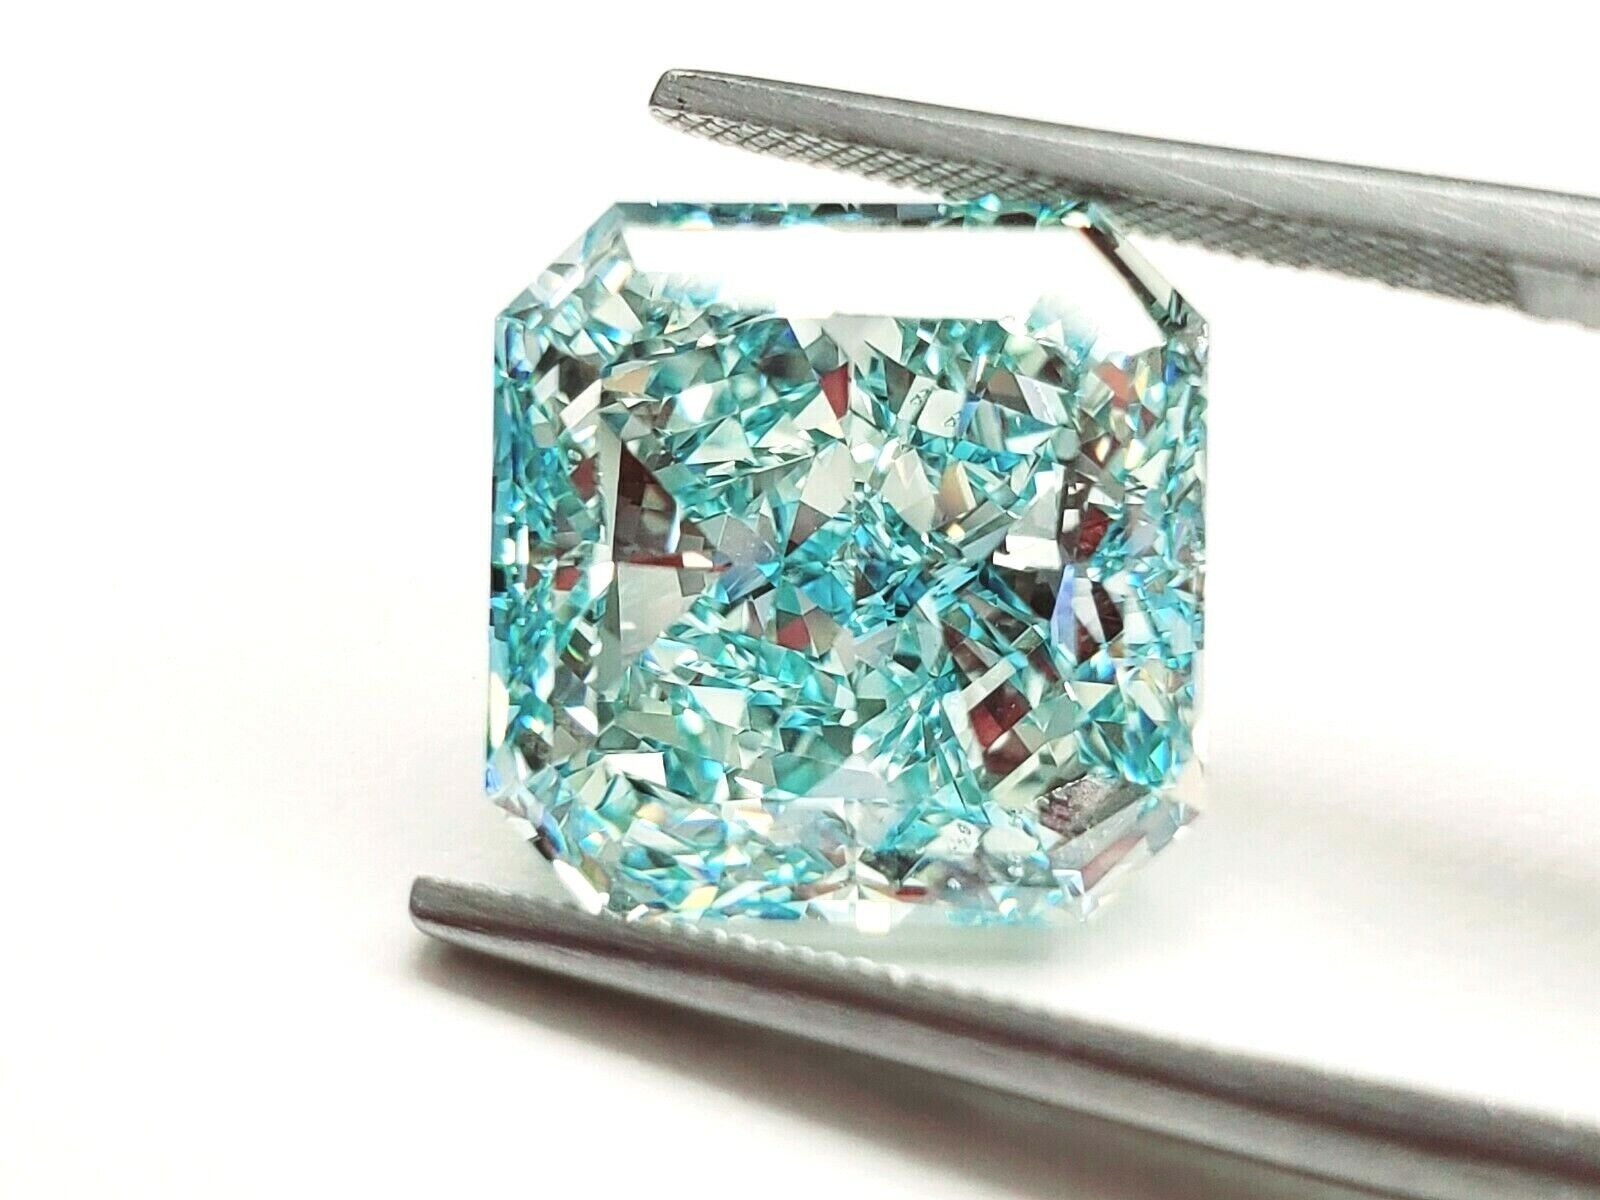 Huge Natural Diamond 11.06CT Fancy Intense Blue-Green Color VS2 GIA Certified